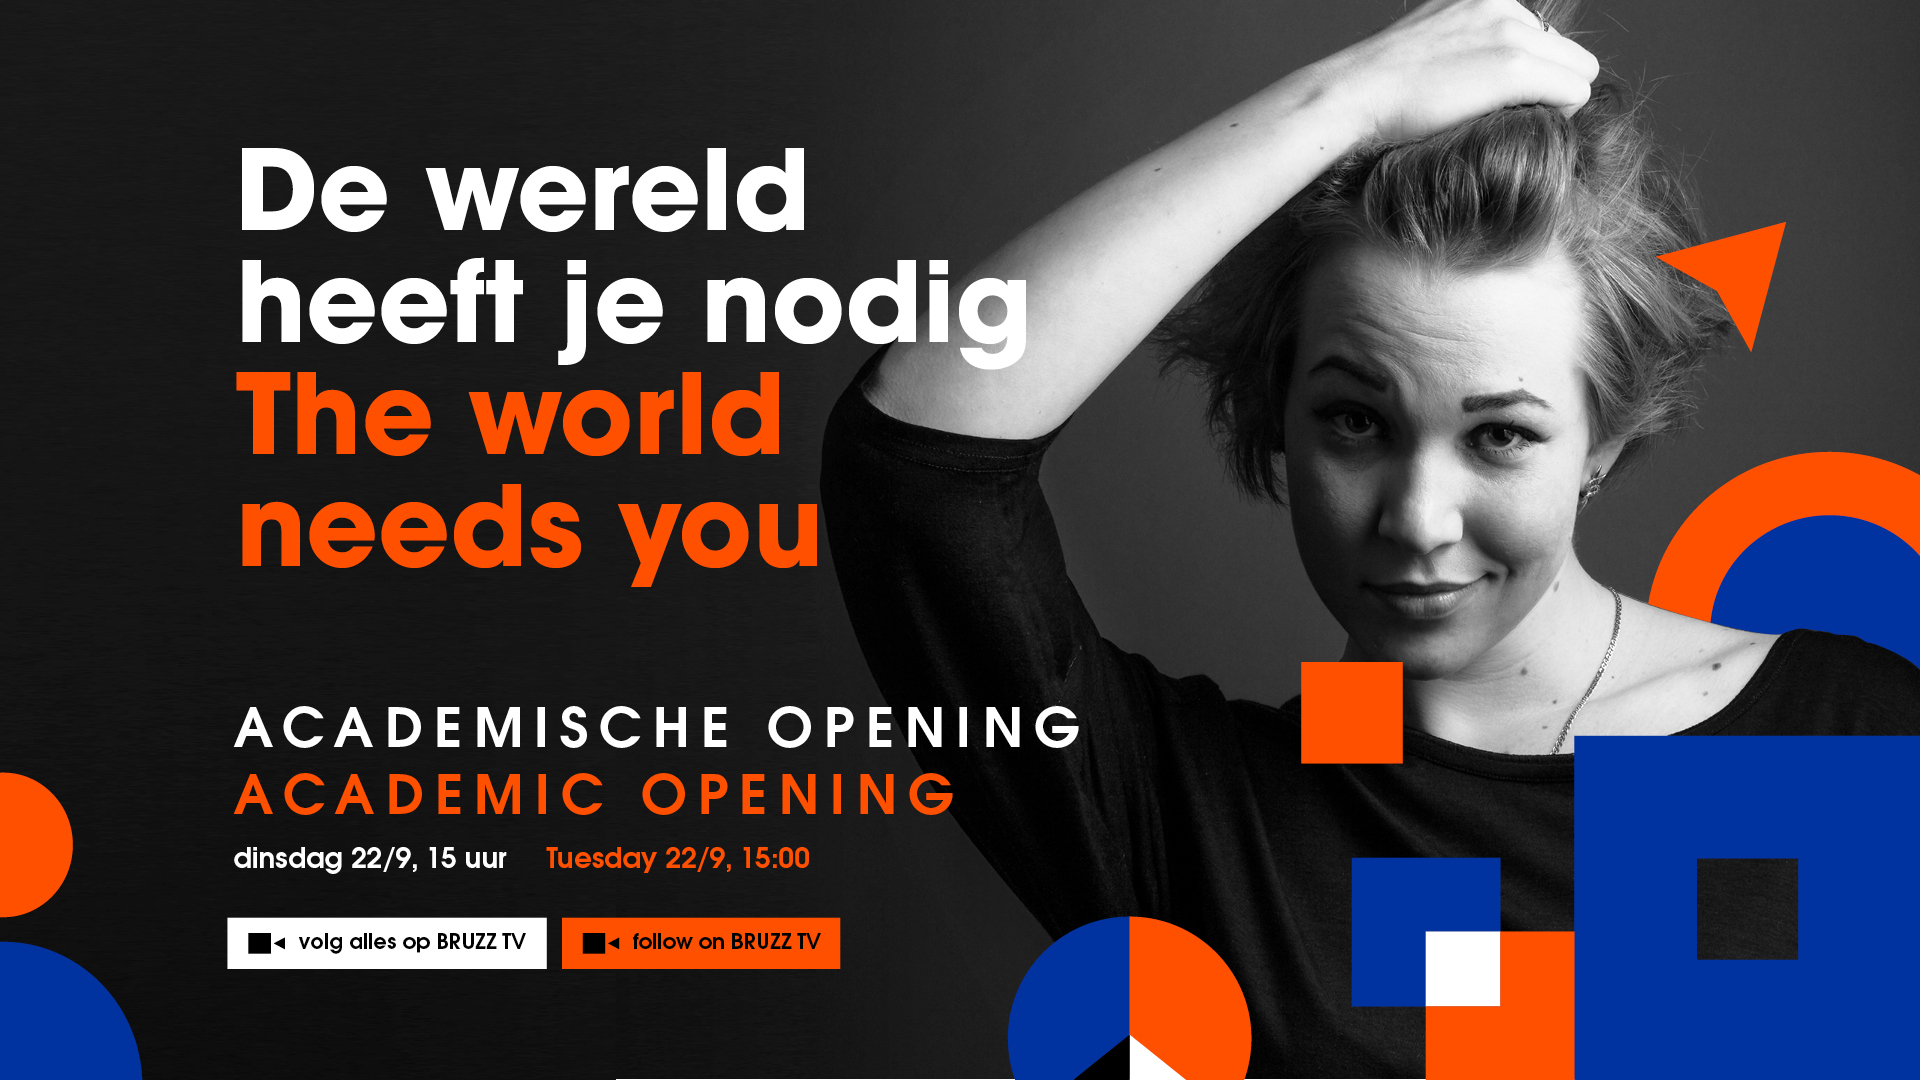 Watch the academic opening LIVE on Tuesday 22 September